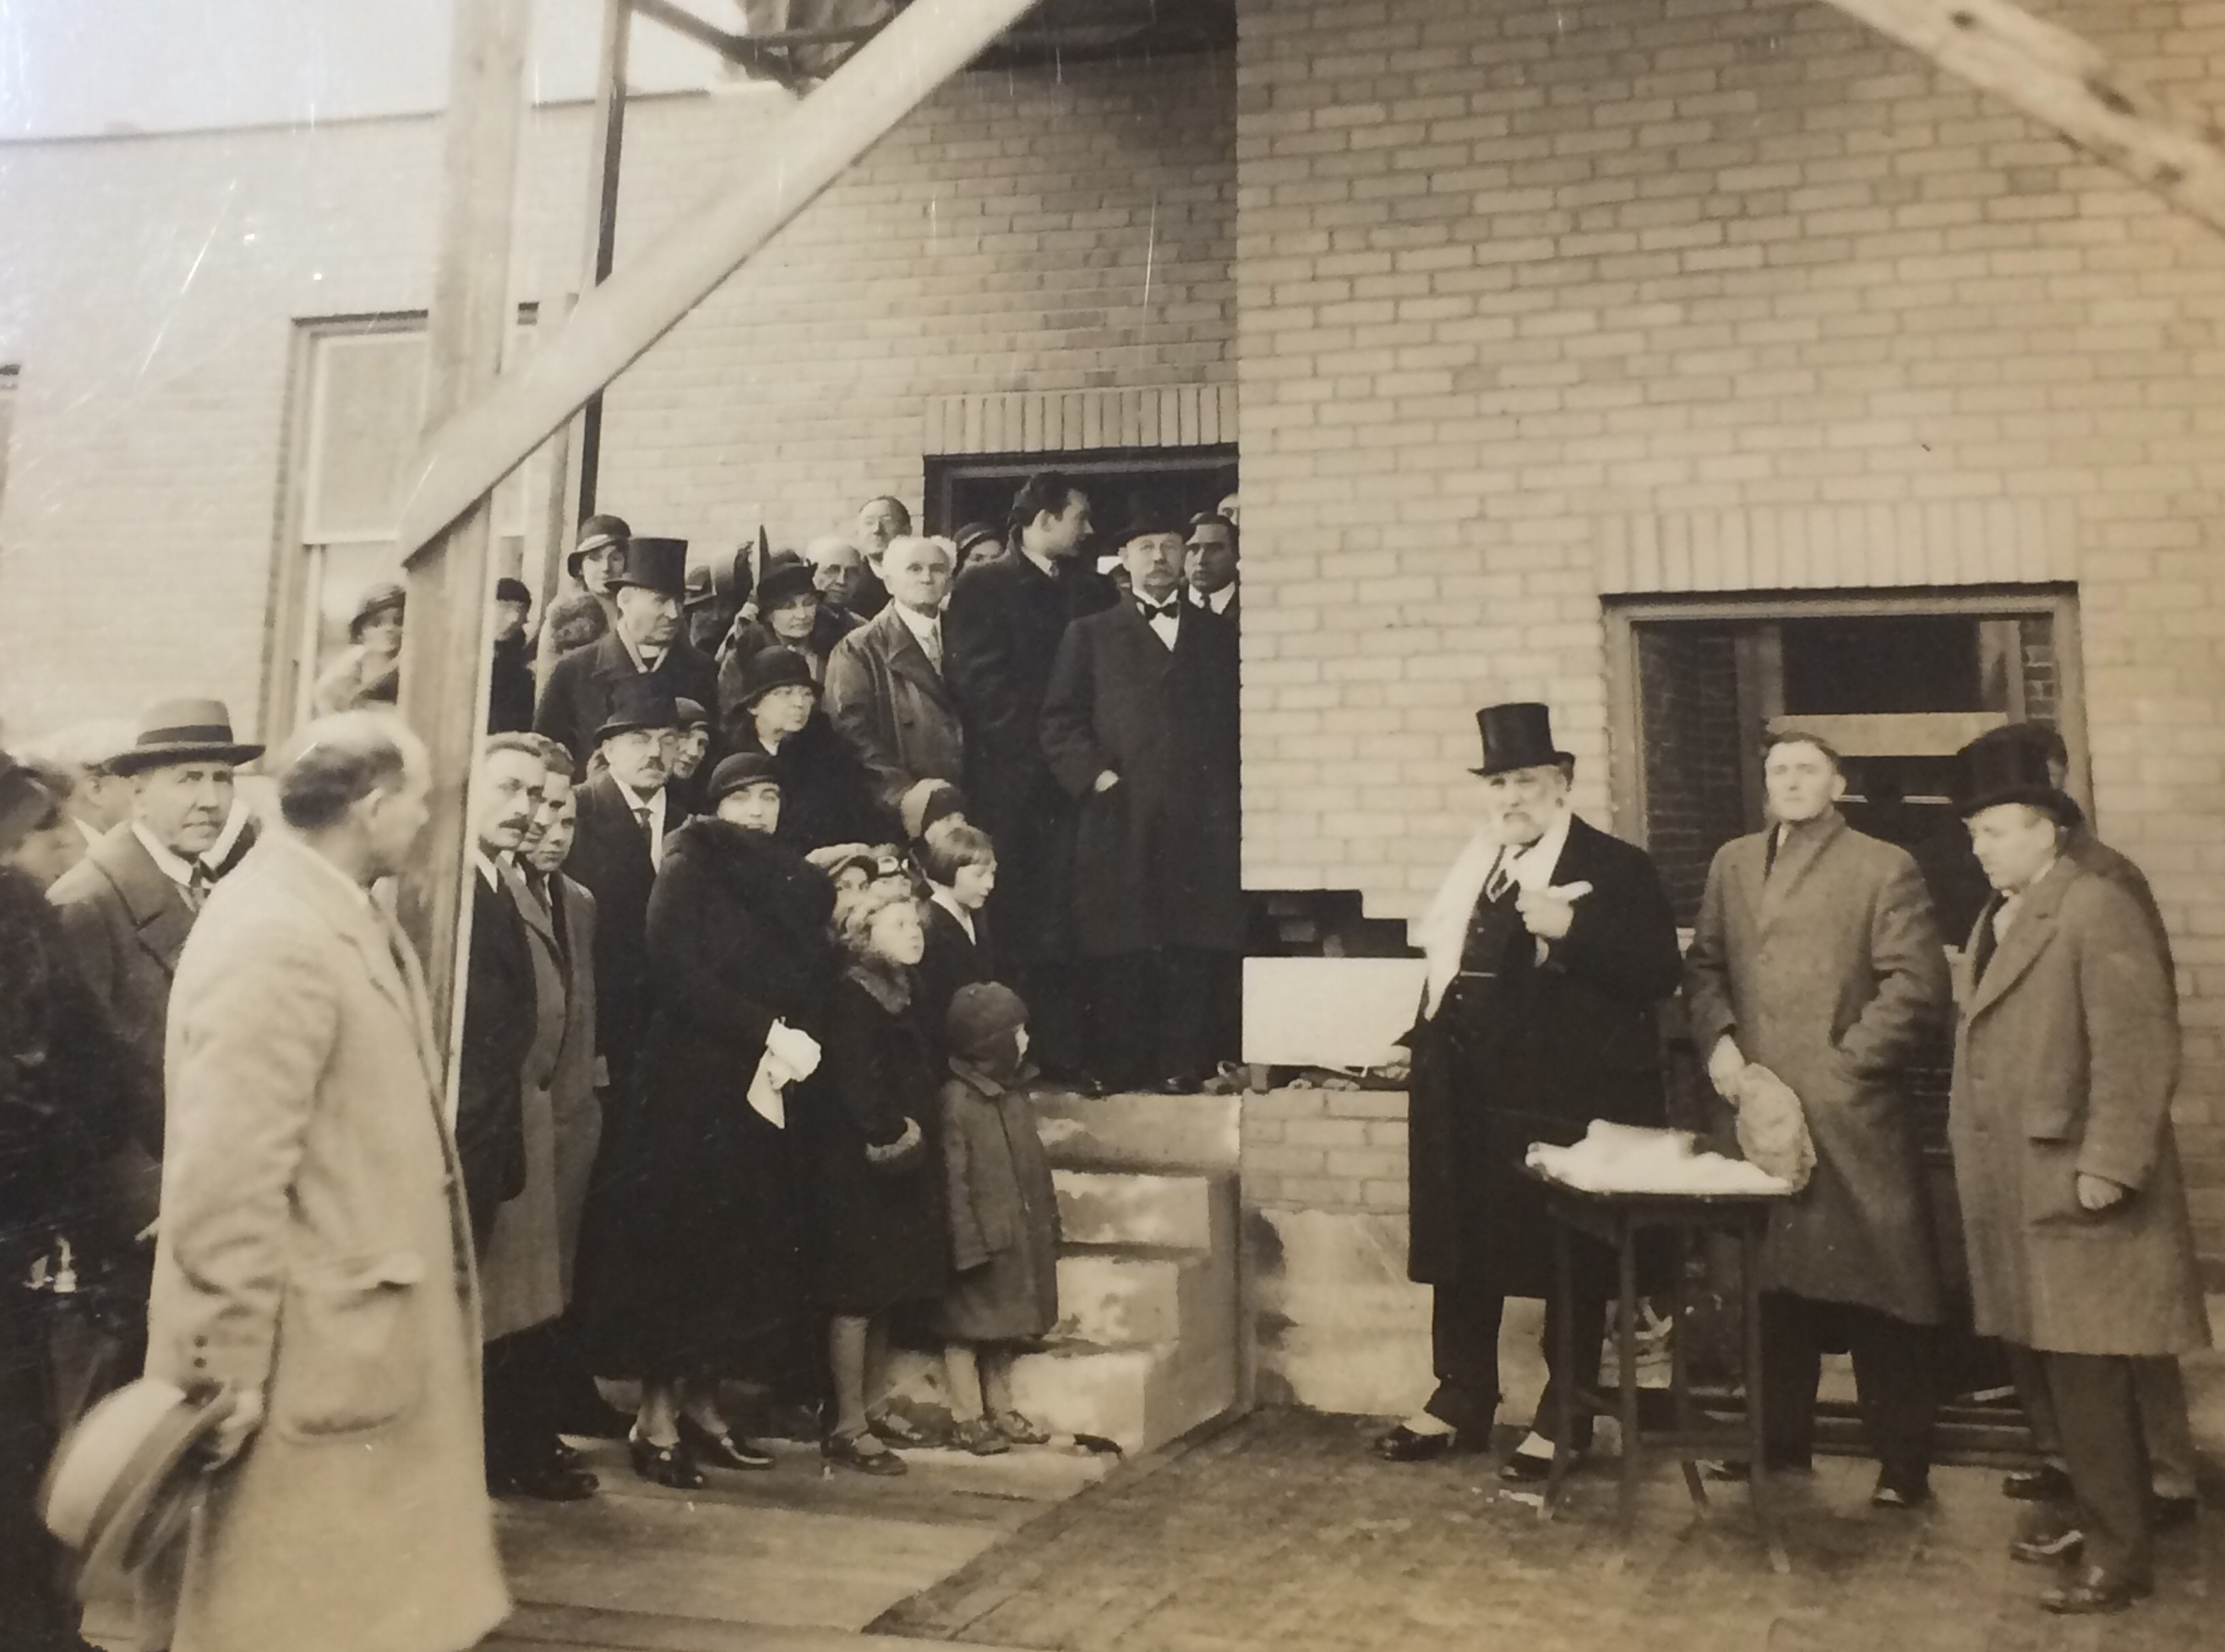 Bull at the opening of a new wing at Peel Memorial 1932